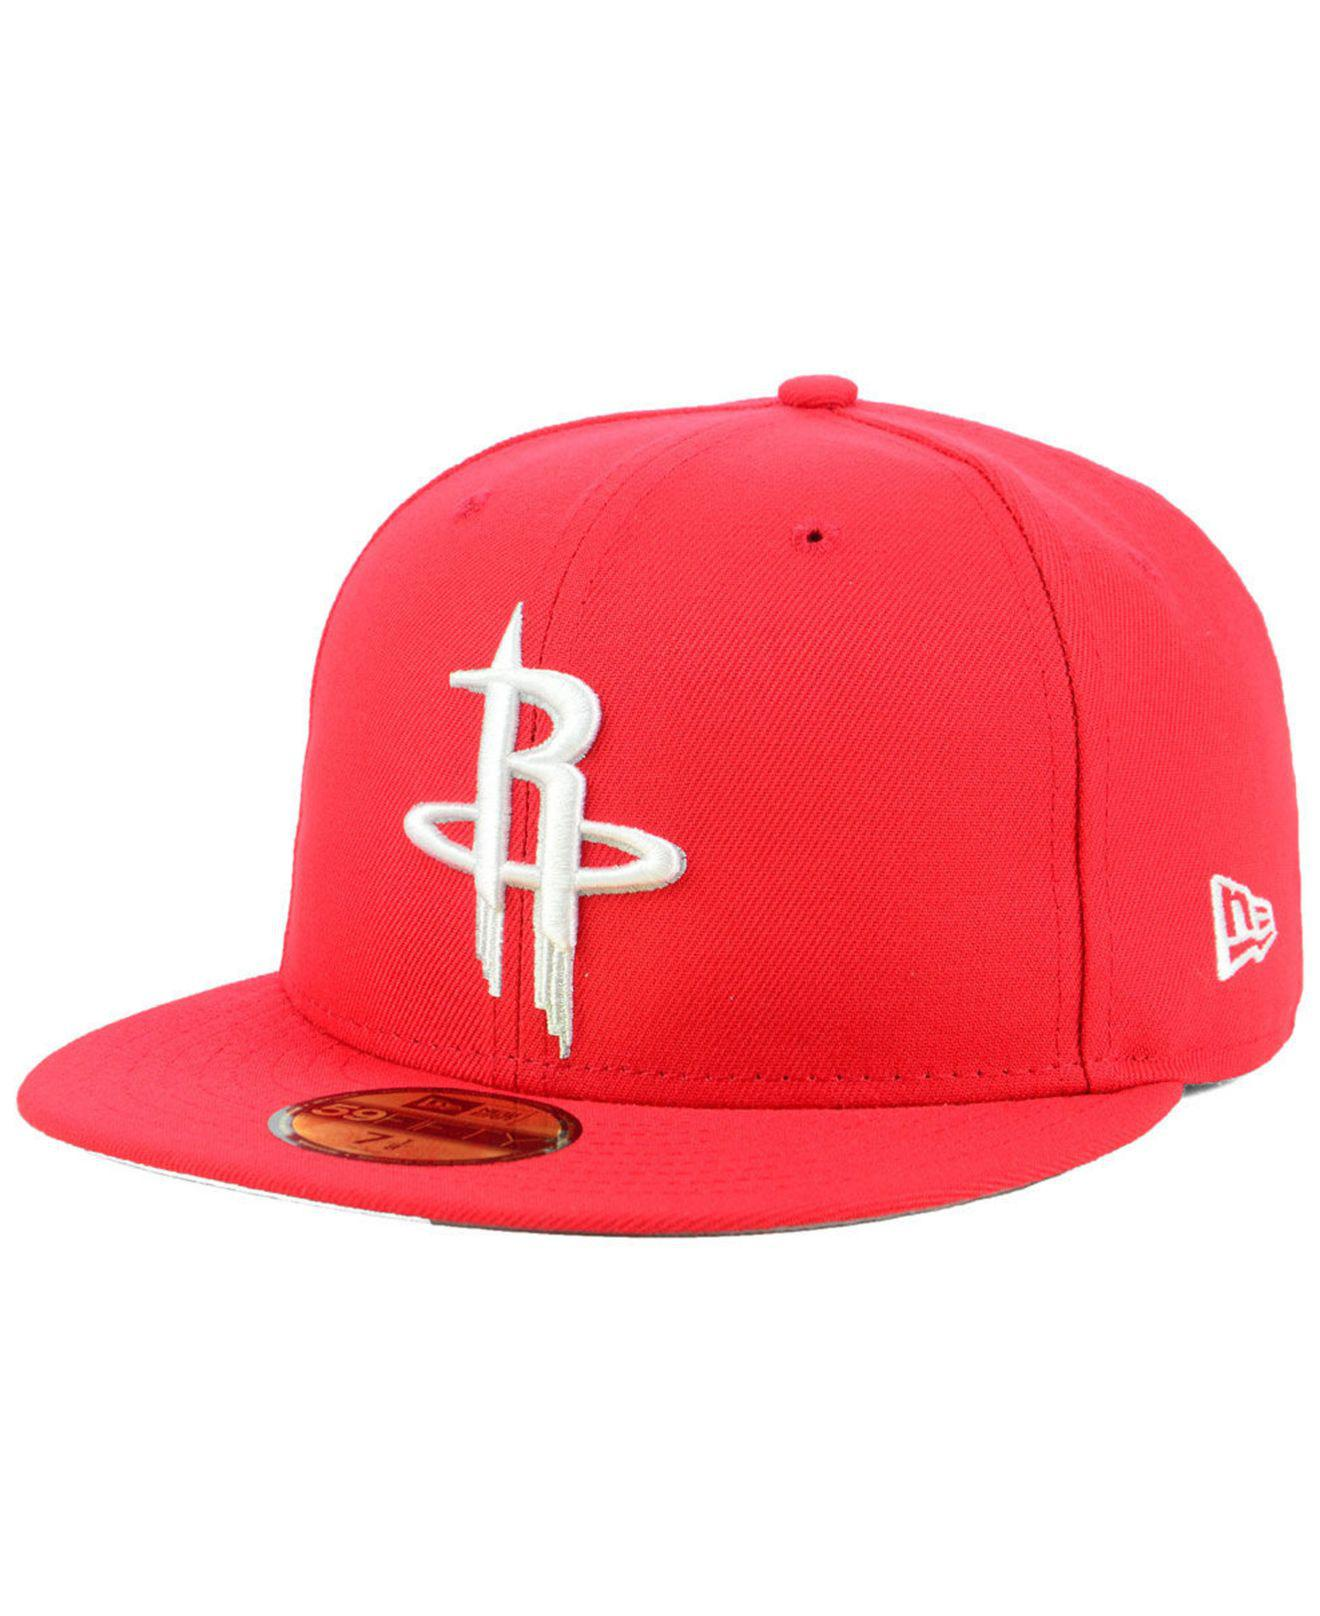 release date: 1aacb c8bca best price new listinghouston rockets nba logo snapbackhatcap james harden  a8ab9 7e0f5  coupon ktz. mens red houston rockets basic 59fifty fitted cap  2018 ...